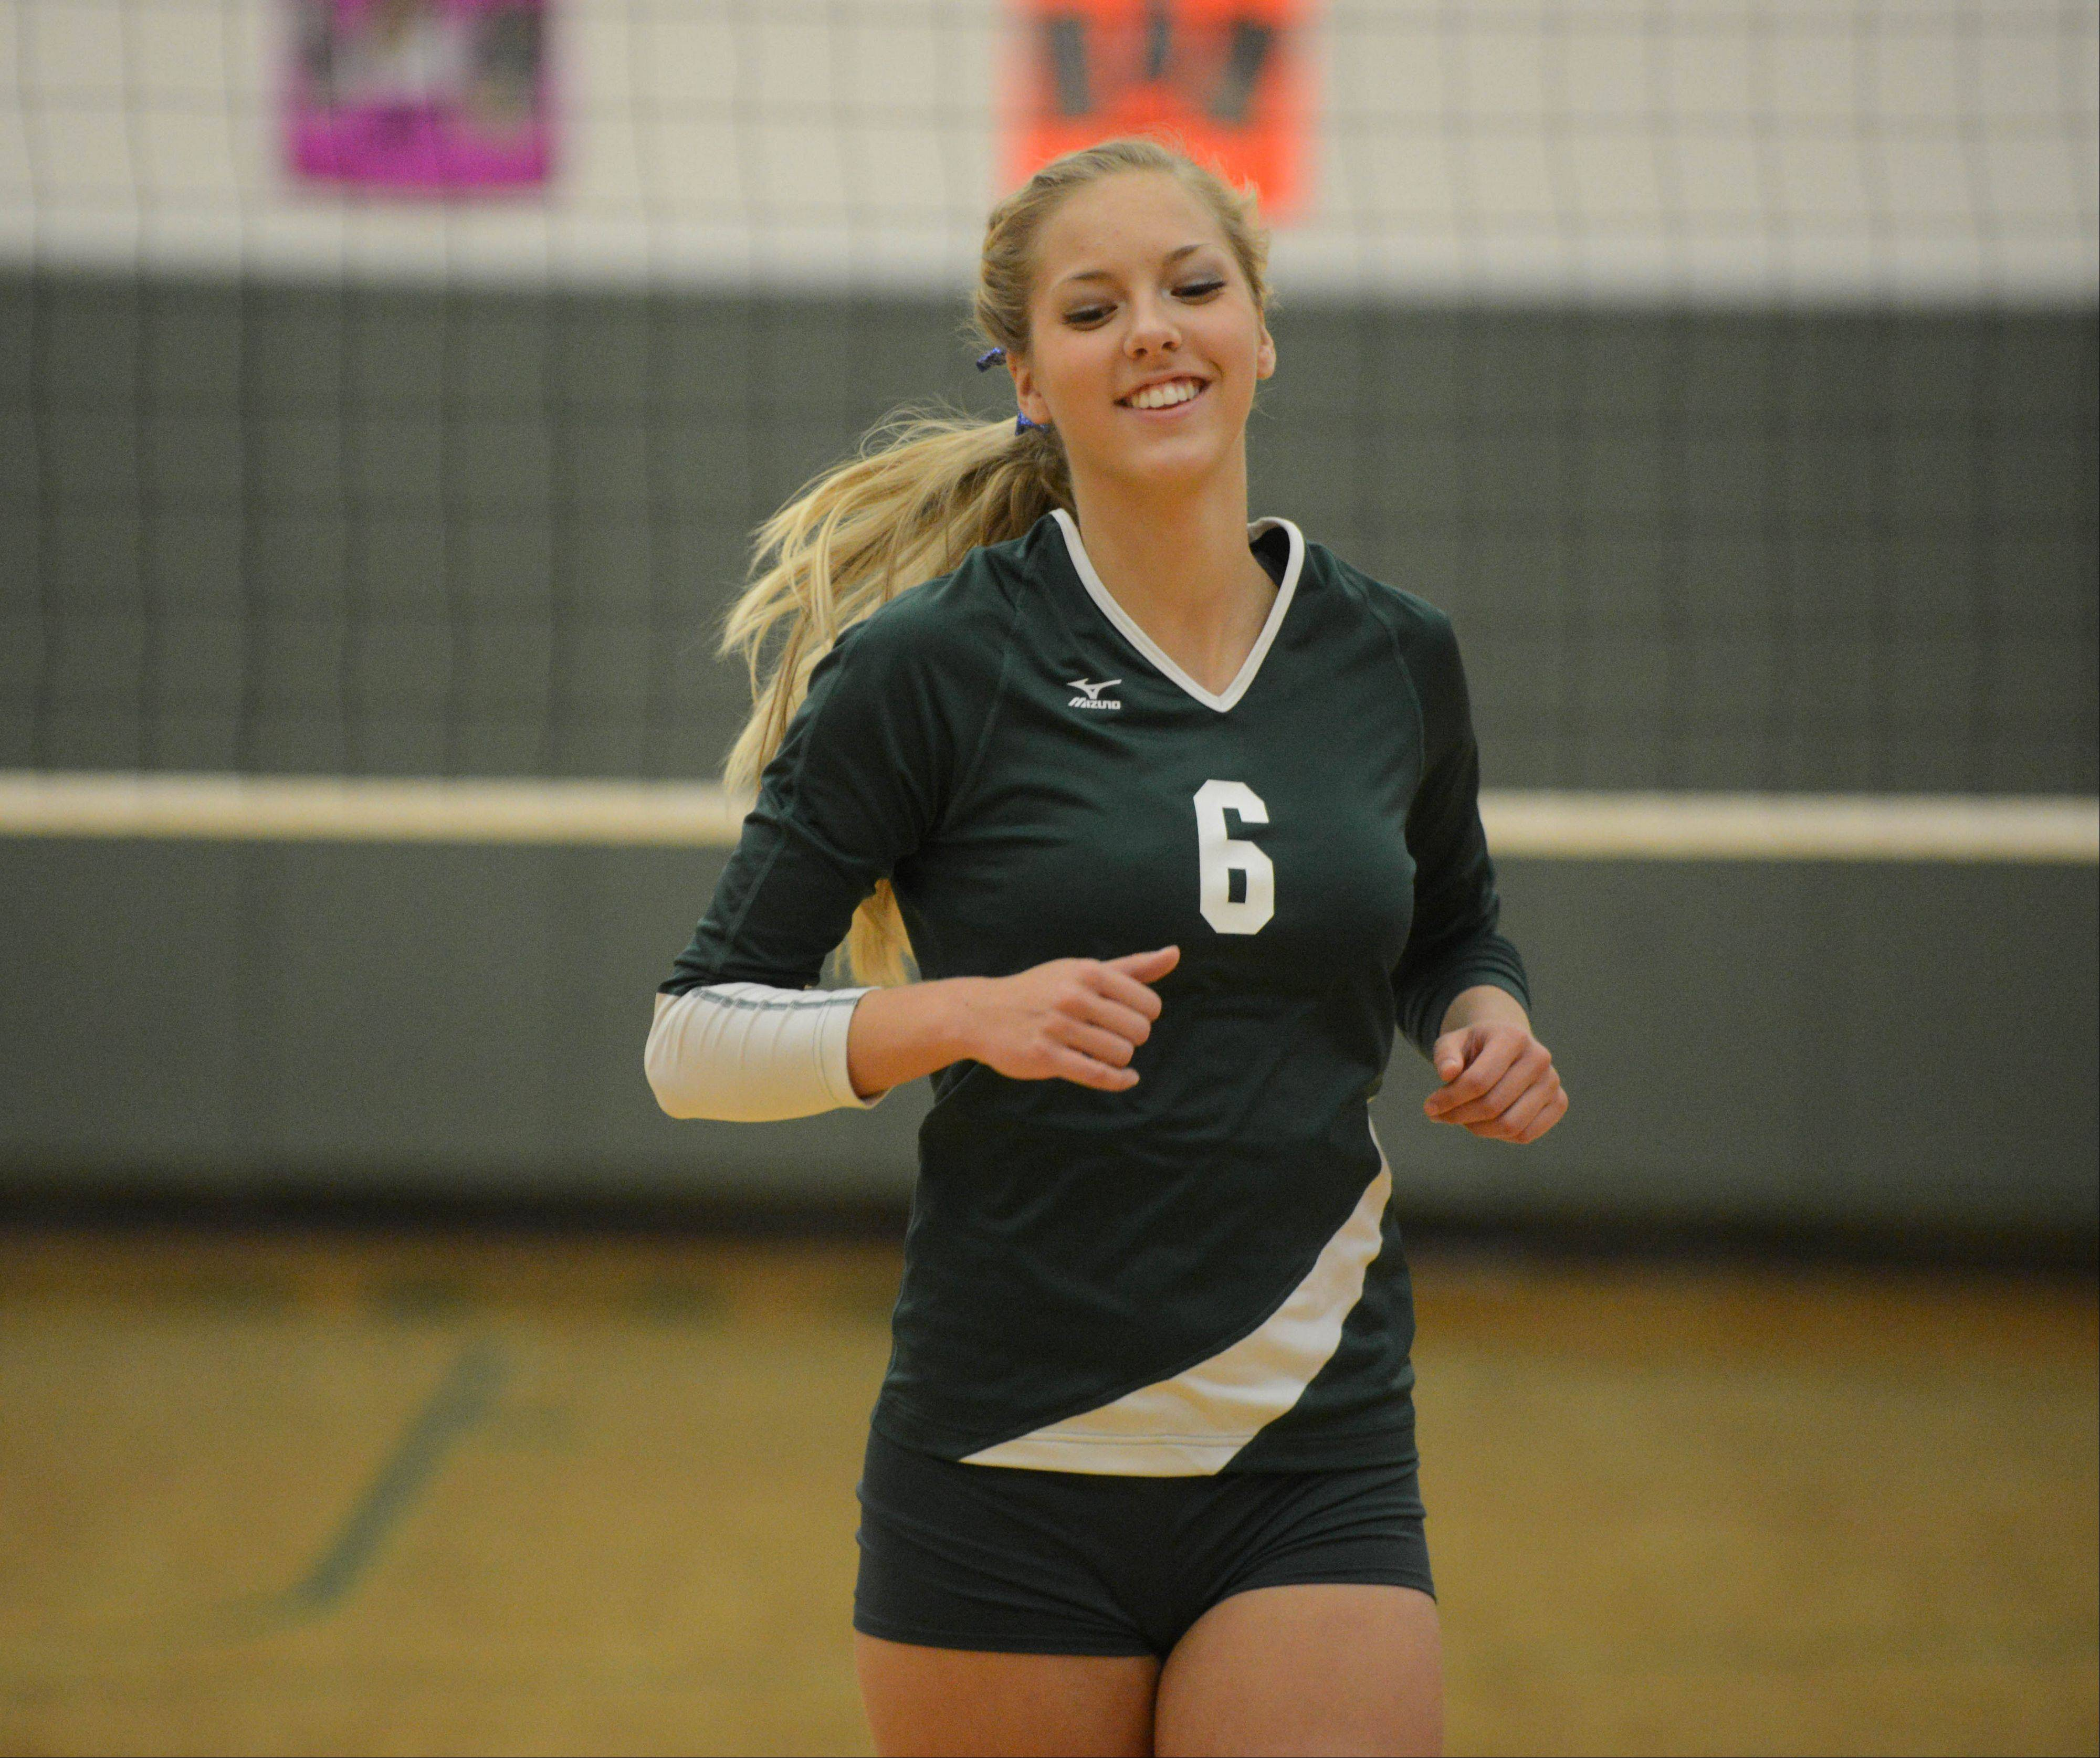 Waubonsie Valley's Rachel Minarick at the Elgin vs. Waubonsie Valley girls volleyball game Tuesday.